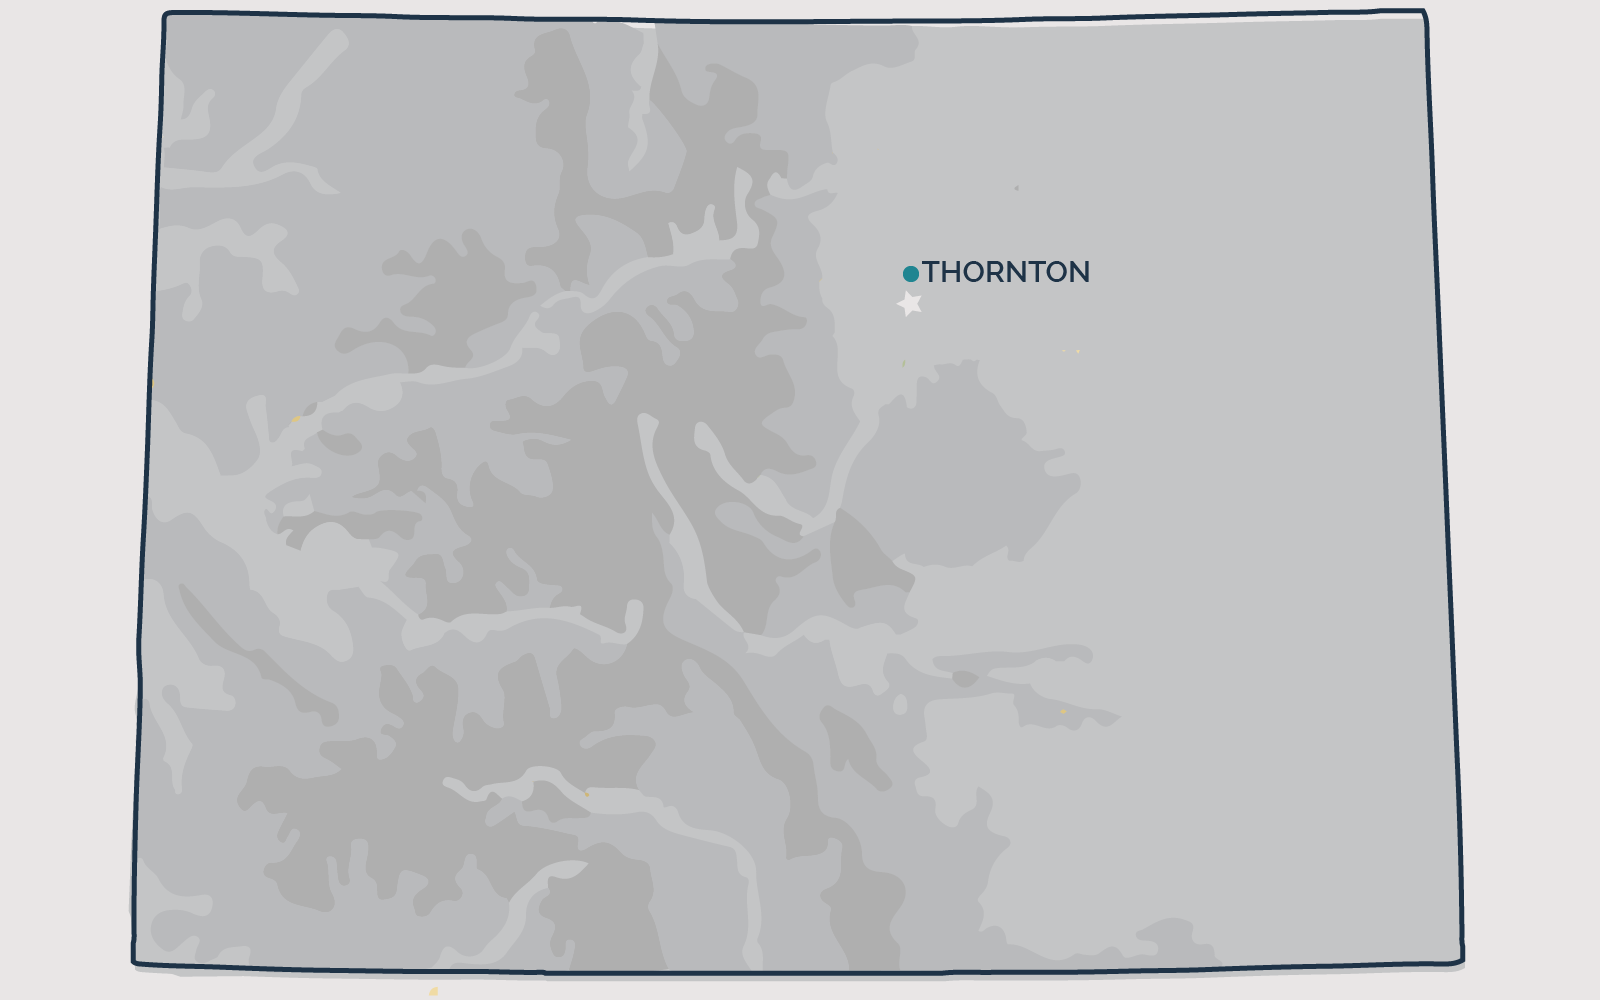 THRONTON, Colorado - Your health and satisfaction are important to us. We are located in Littleton, Colorado and are pleased to provide our professional, honest, and affordable radon testing and mitigation services to happy and satisfied customers all along the front range of our beautiful State of Colorado.